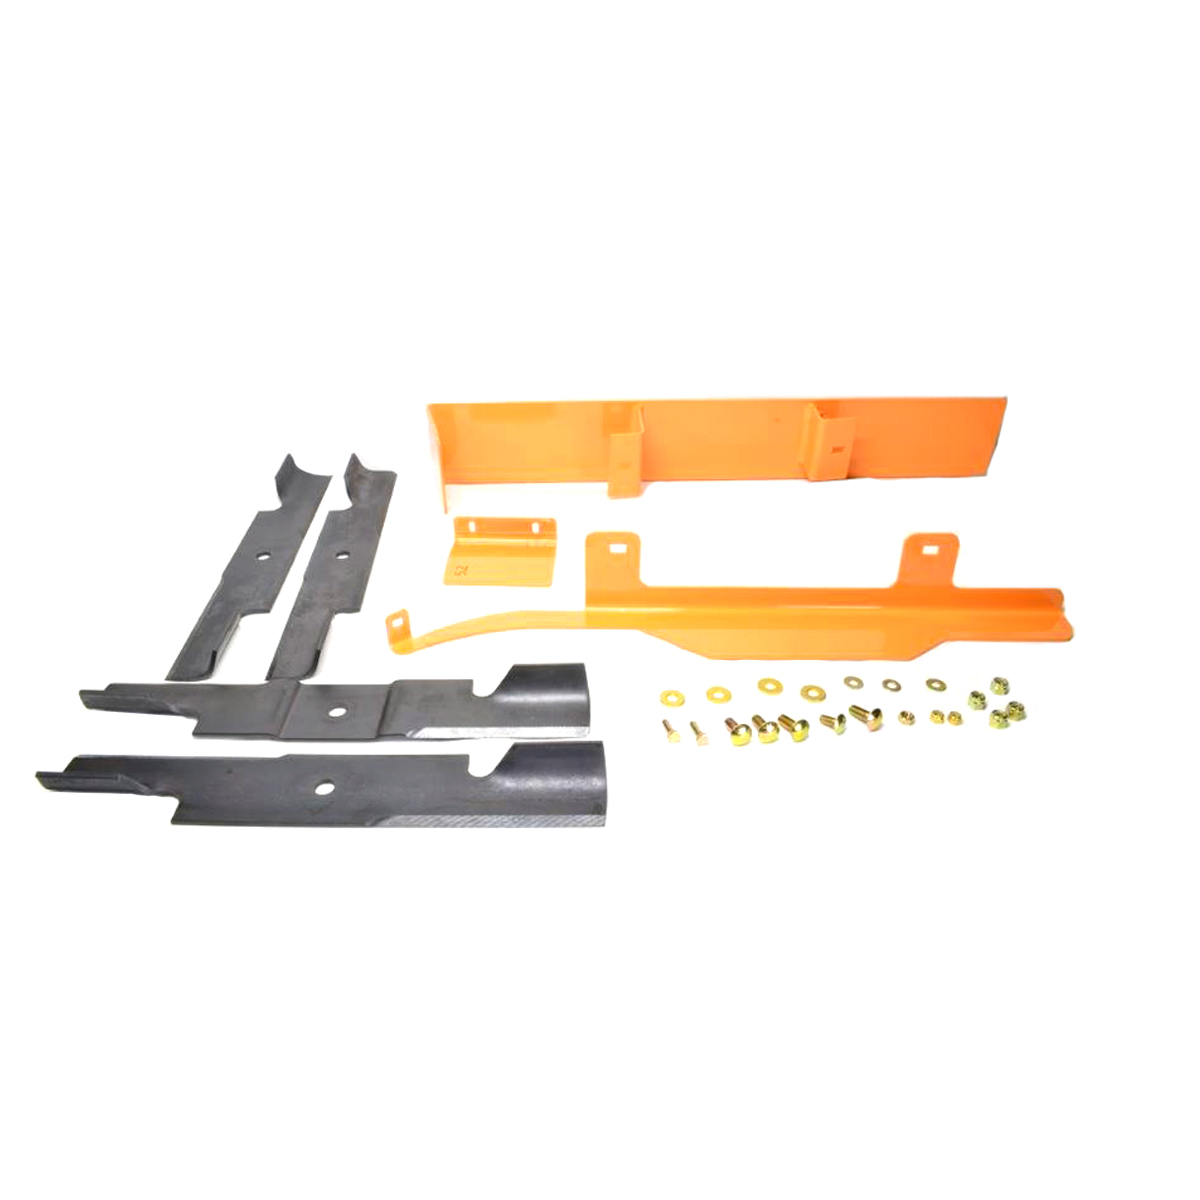 Scag 52 inch Installation Kit (Includes High Lift Blades & Baffles) 9070